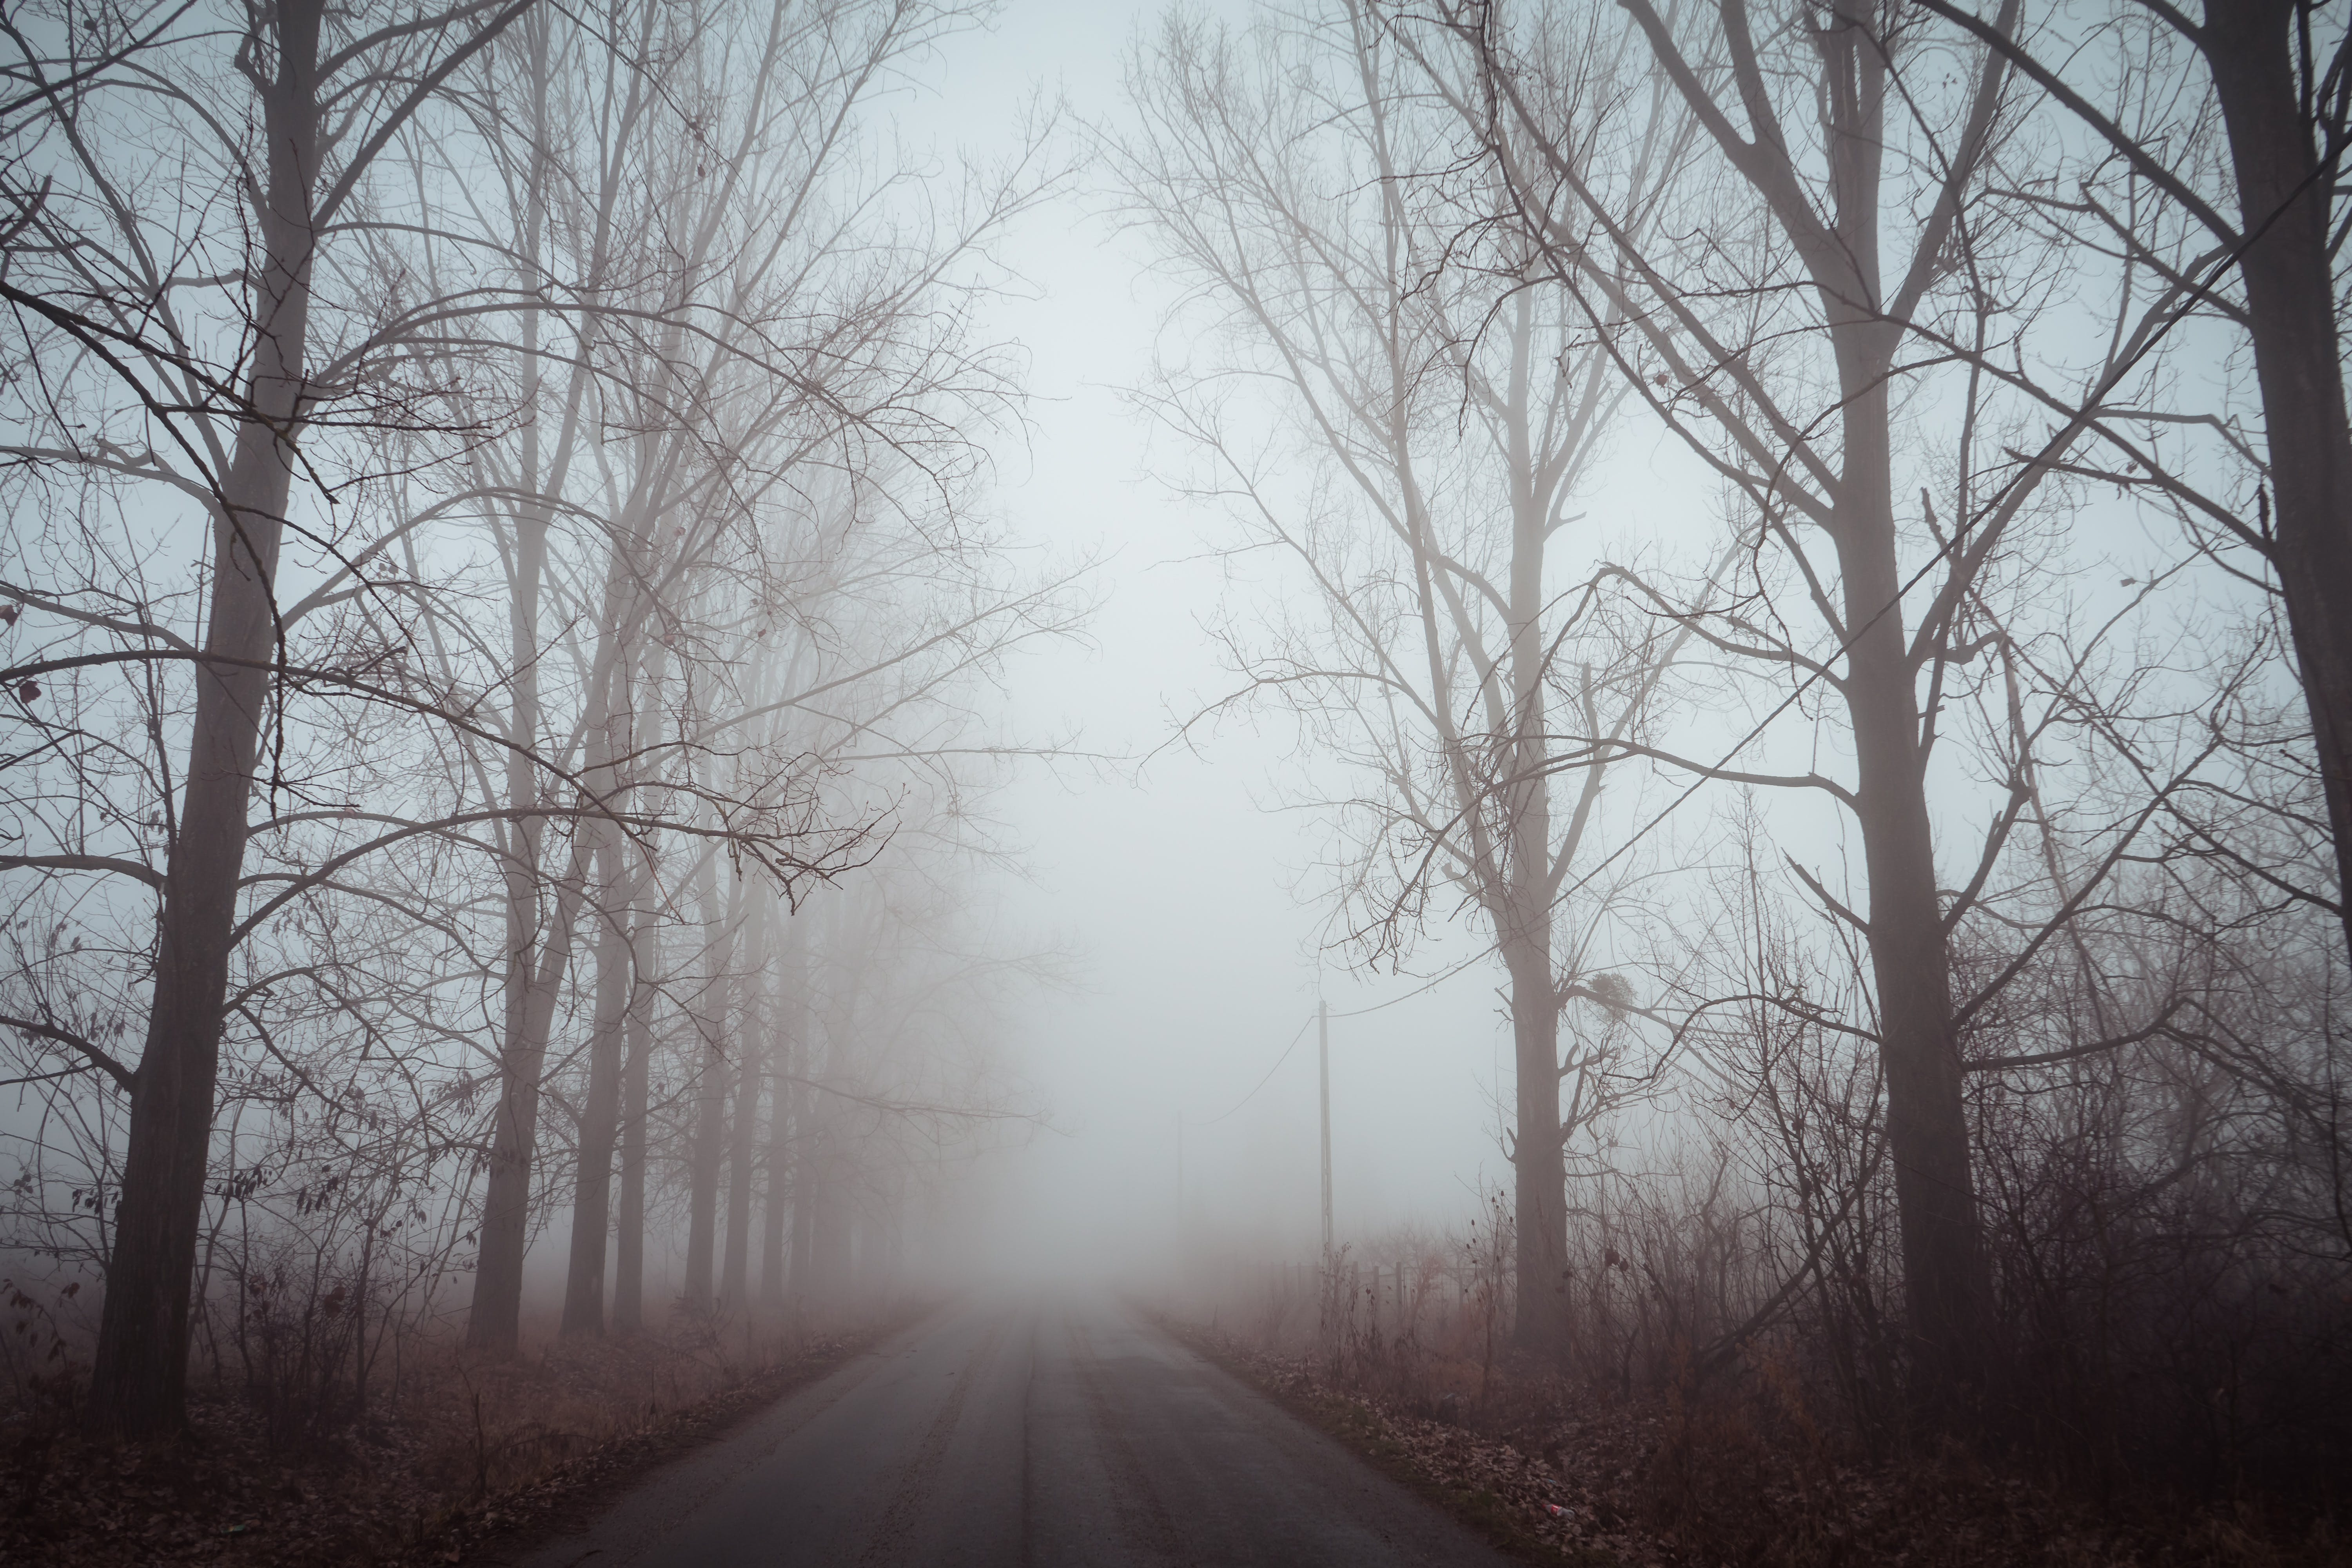 Bare Trees With Fog on Road